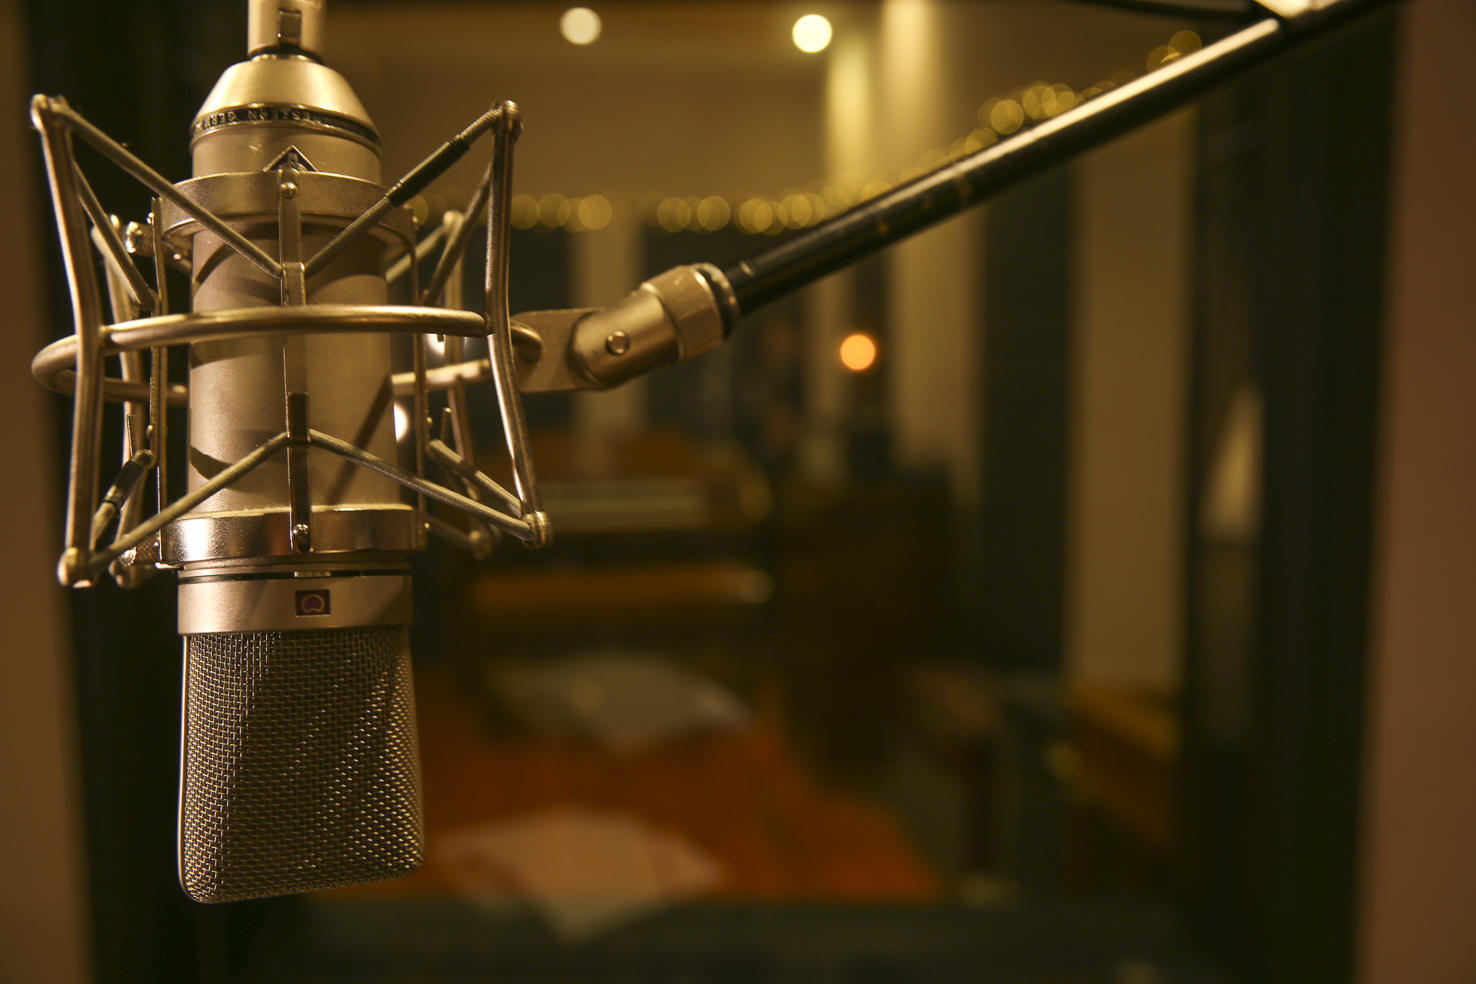 Vocal Booth - With a warm presence that supports and celebrates the tone of any vocalist, this room also sounds amazing for recording an intimate double bass part, or a drum set set ready to be blown out and turned right up in the mix!